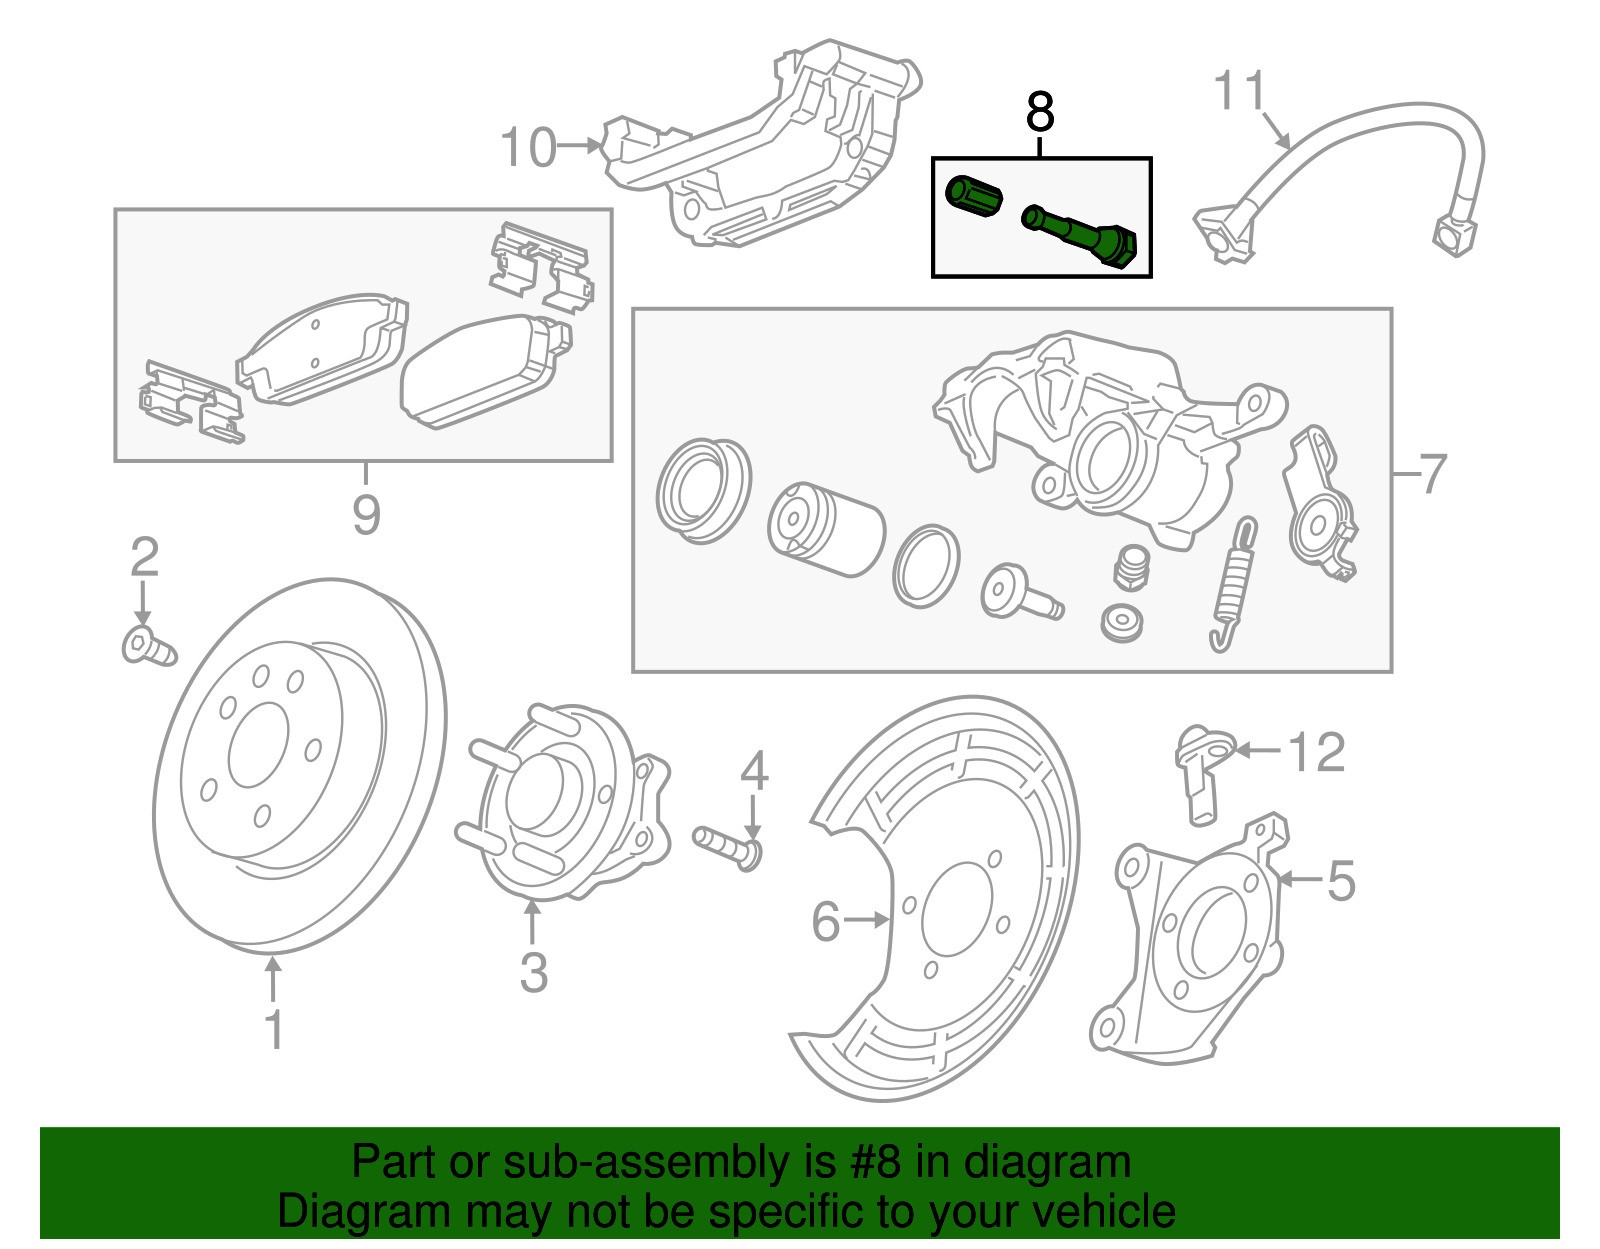 Car assembly Line Diagram Genuine Gm Caliper assembly Mount Bolt Of Car assembly Line Diagram